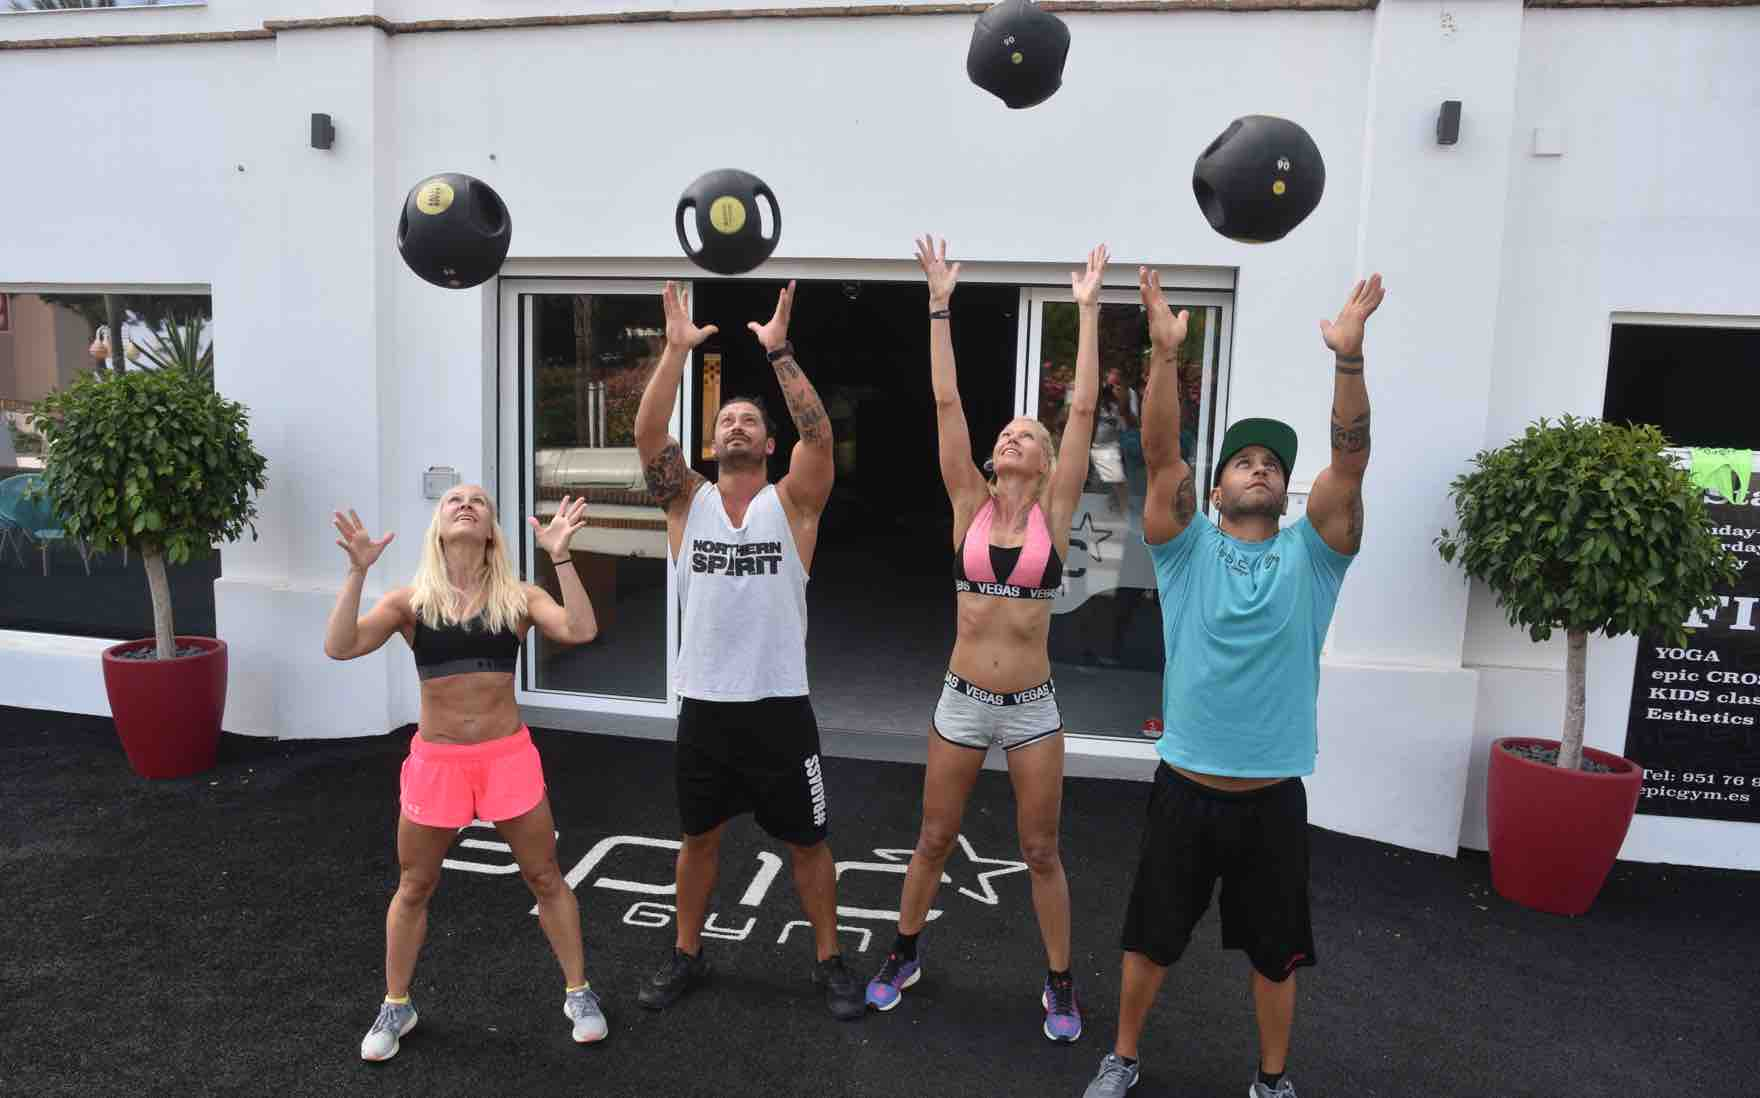 Training group at Epic Gym in Benalmadena, Costa del Sol